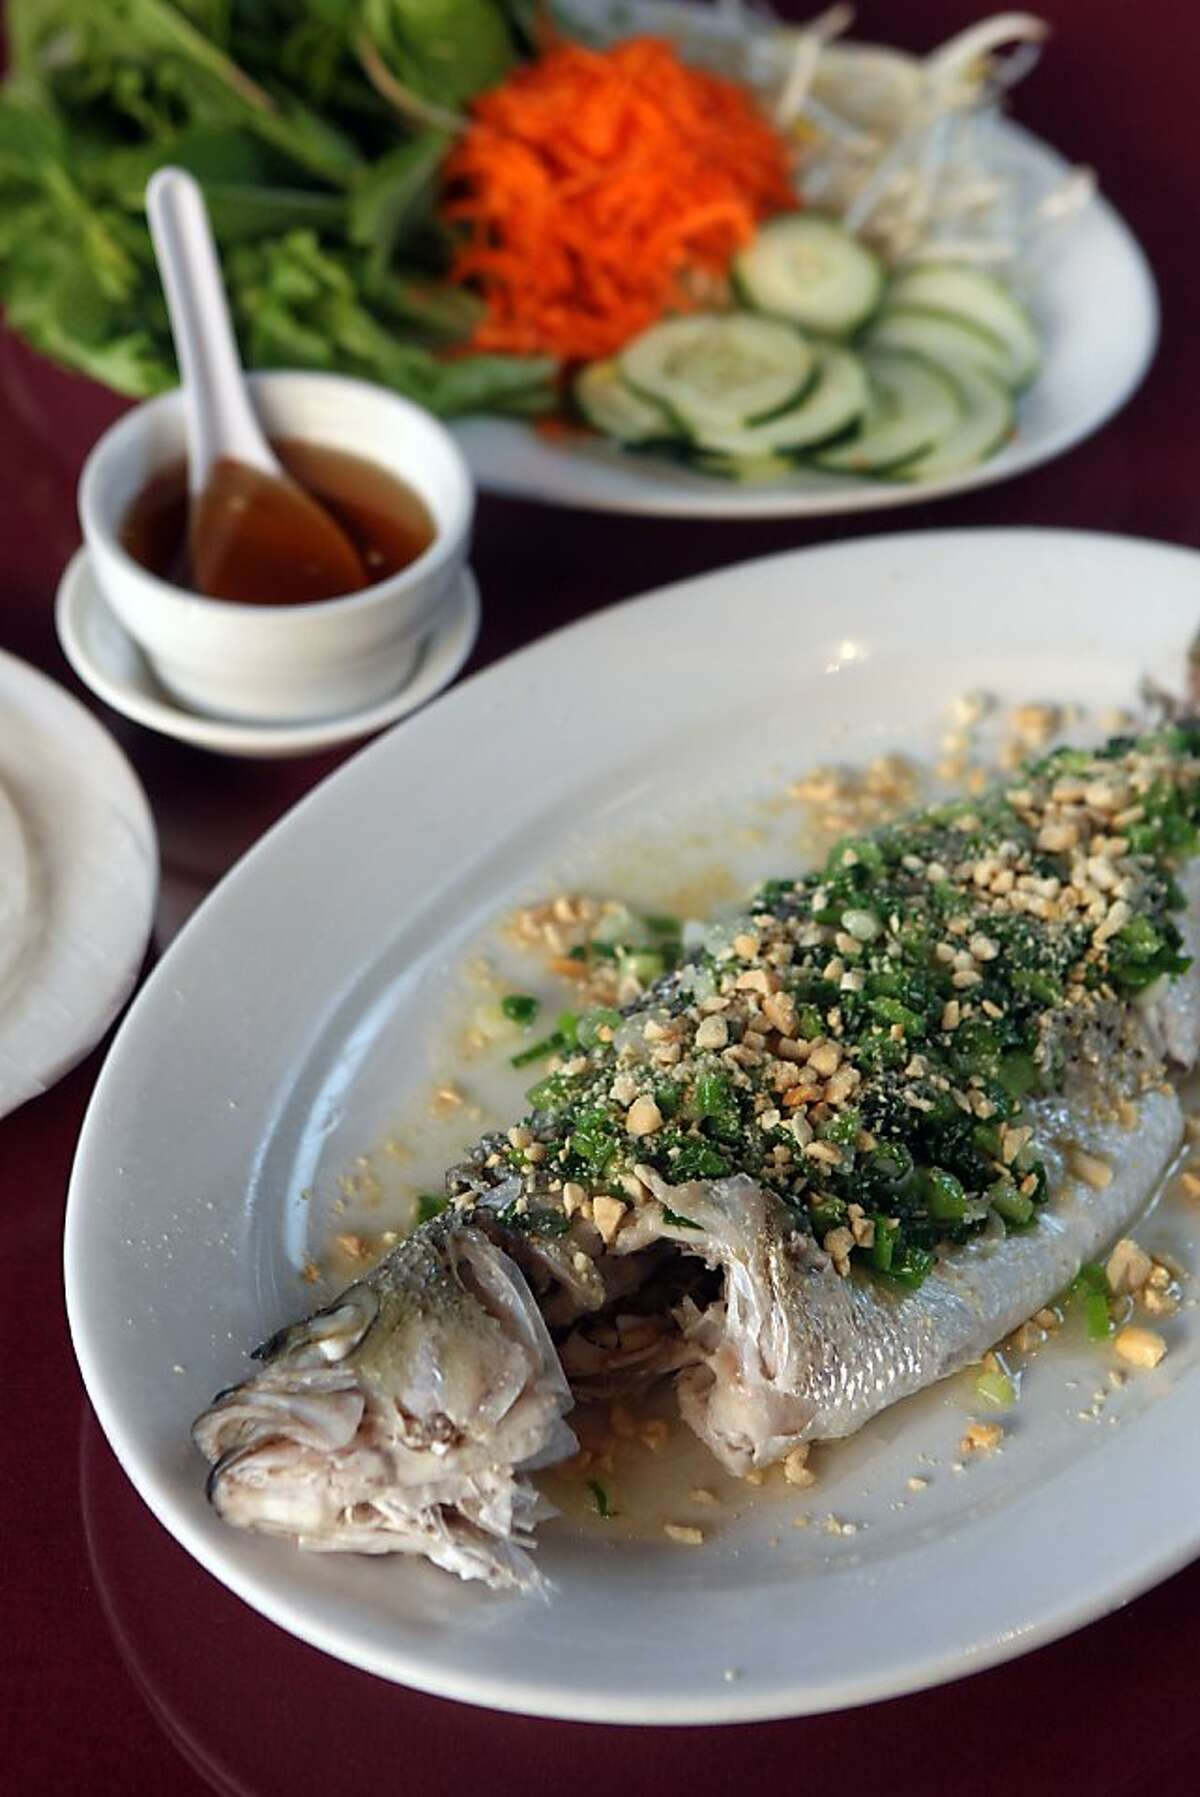 Le Cheval Restaurant in Oakland, offering a verity of Vietnamese authentic dishes including their whole Sea Bass Friday May 31, 2012.